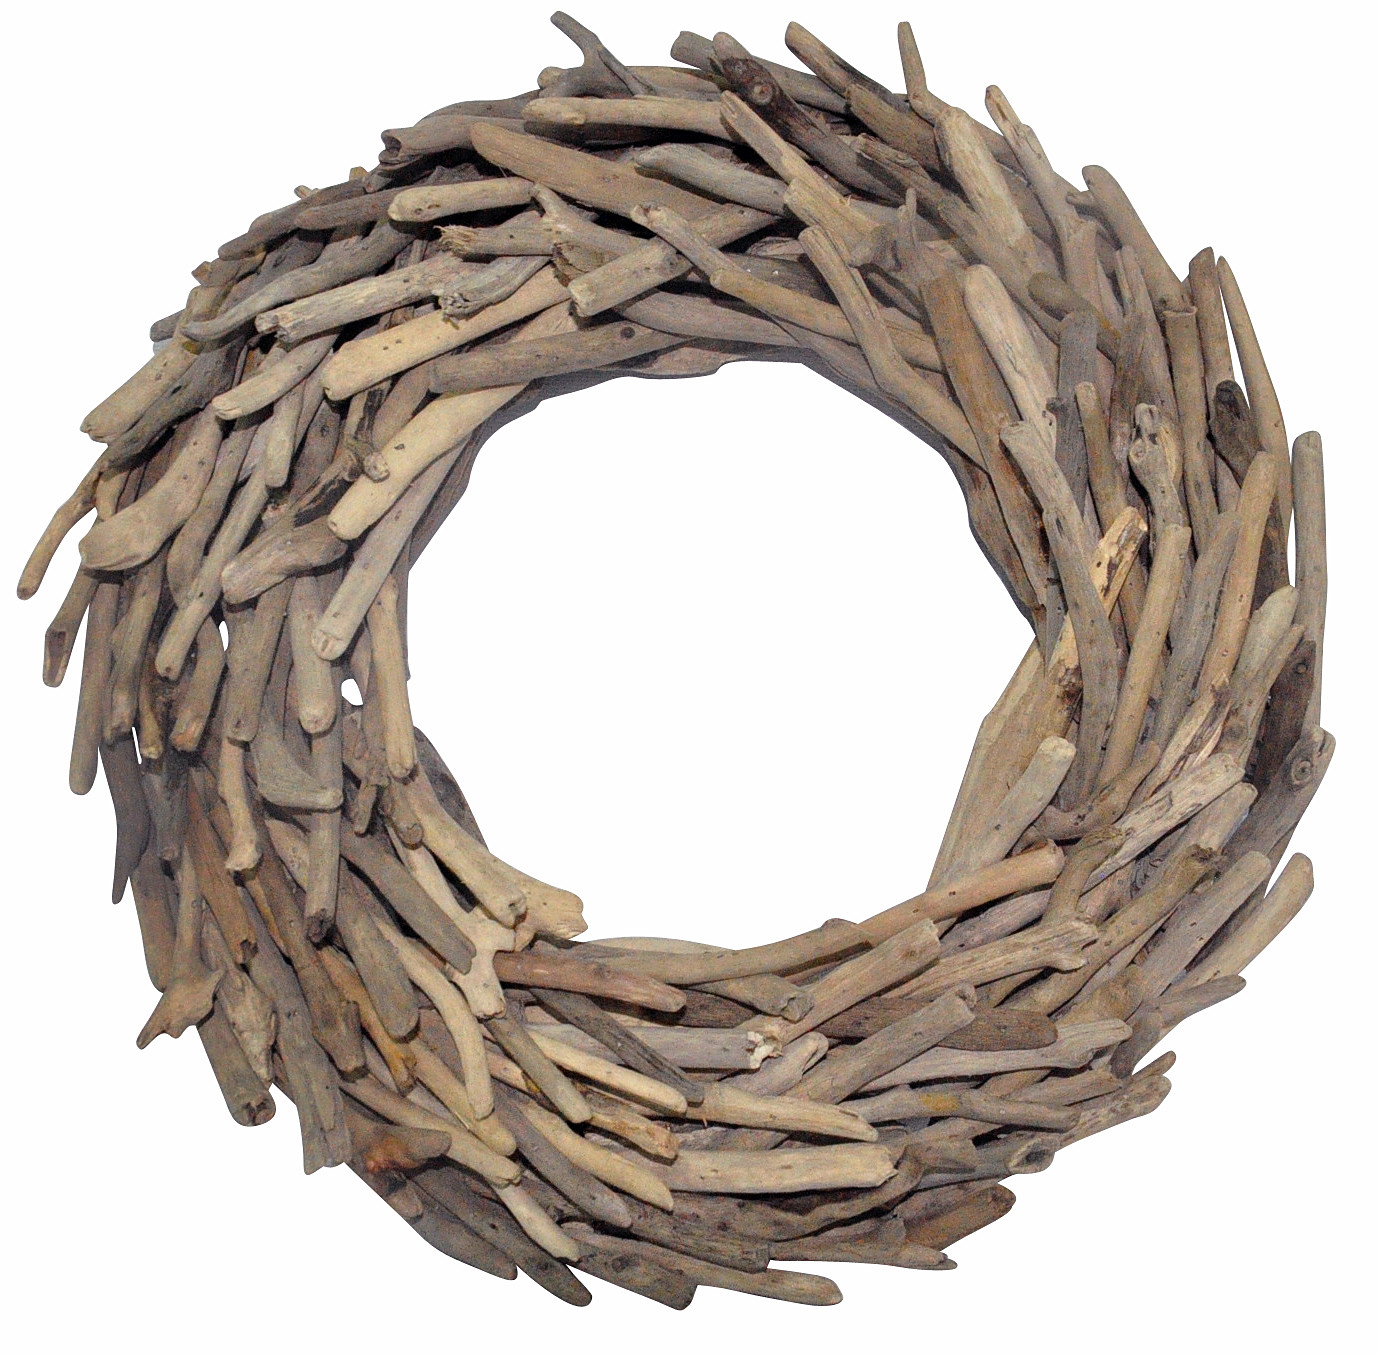 Driftwood Christmas Wreath  Hardtofind. Bathroom Cabinet Hardware. French Country Bedrooms. Cabinet World. Amazing Living Rooms. Custom Distributors. Orange Leather Chair. Behr Subtle Touch. Range Hood Cover